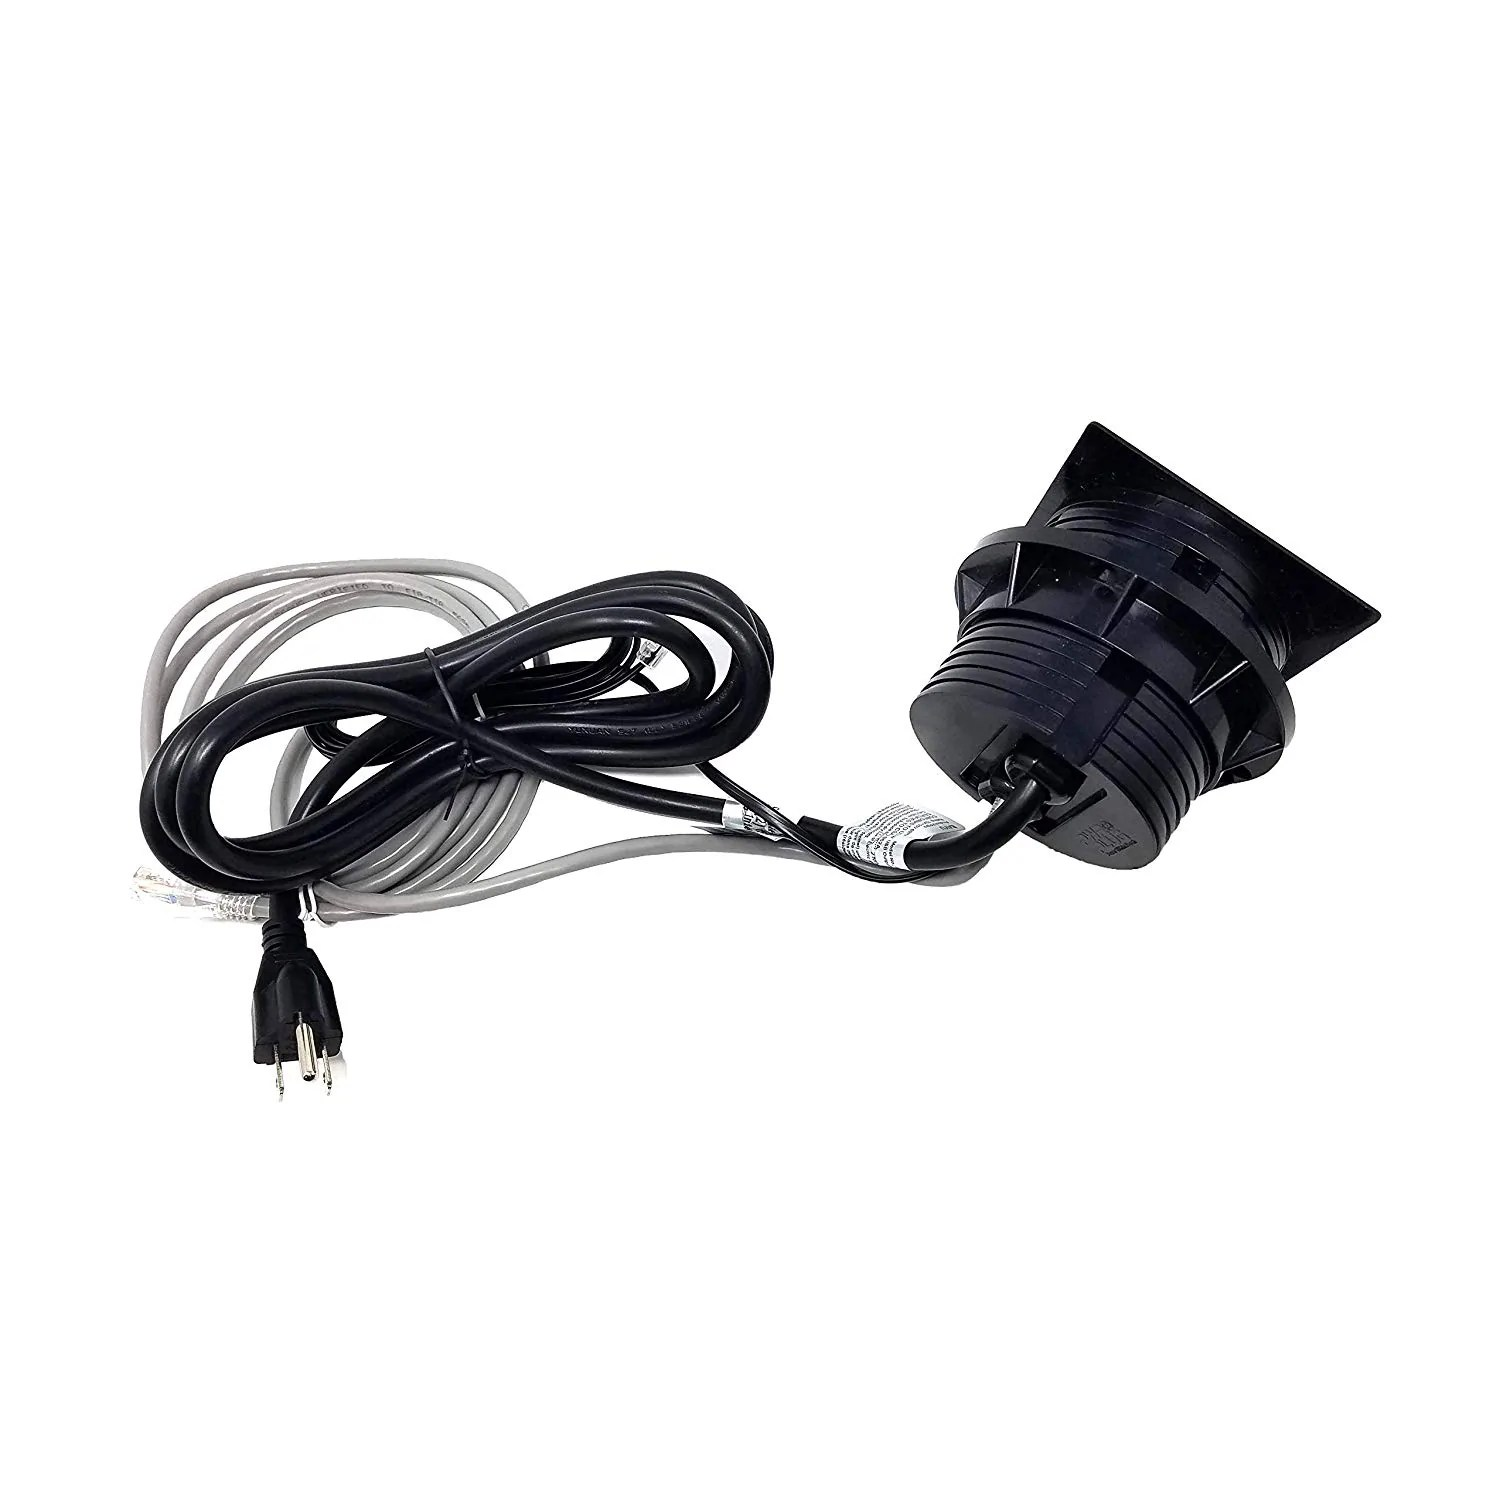 small resolution of  pwr plug power grommet with phone jack universal fit 3 1 8 3